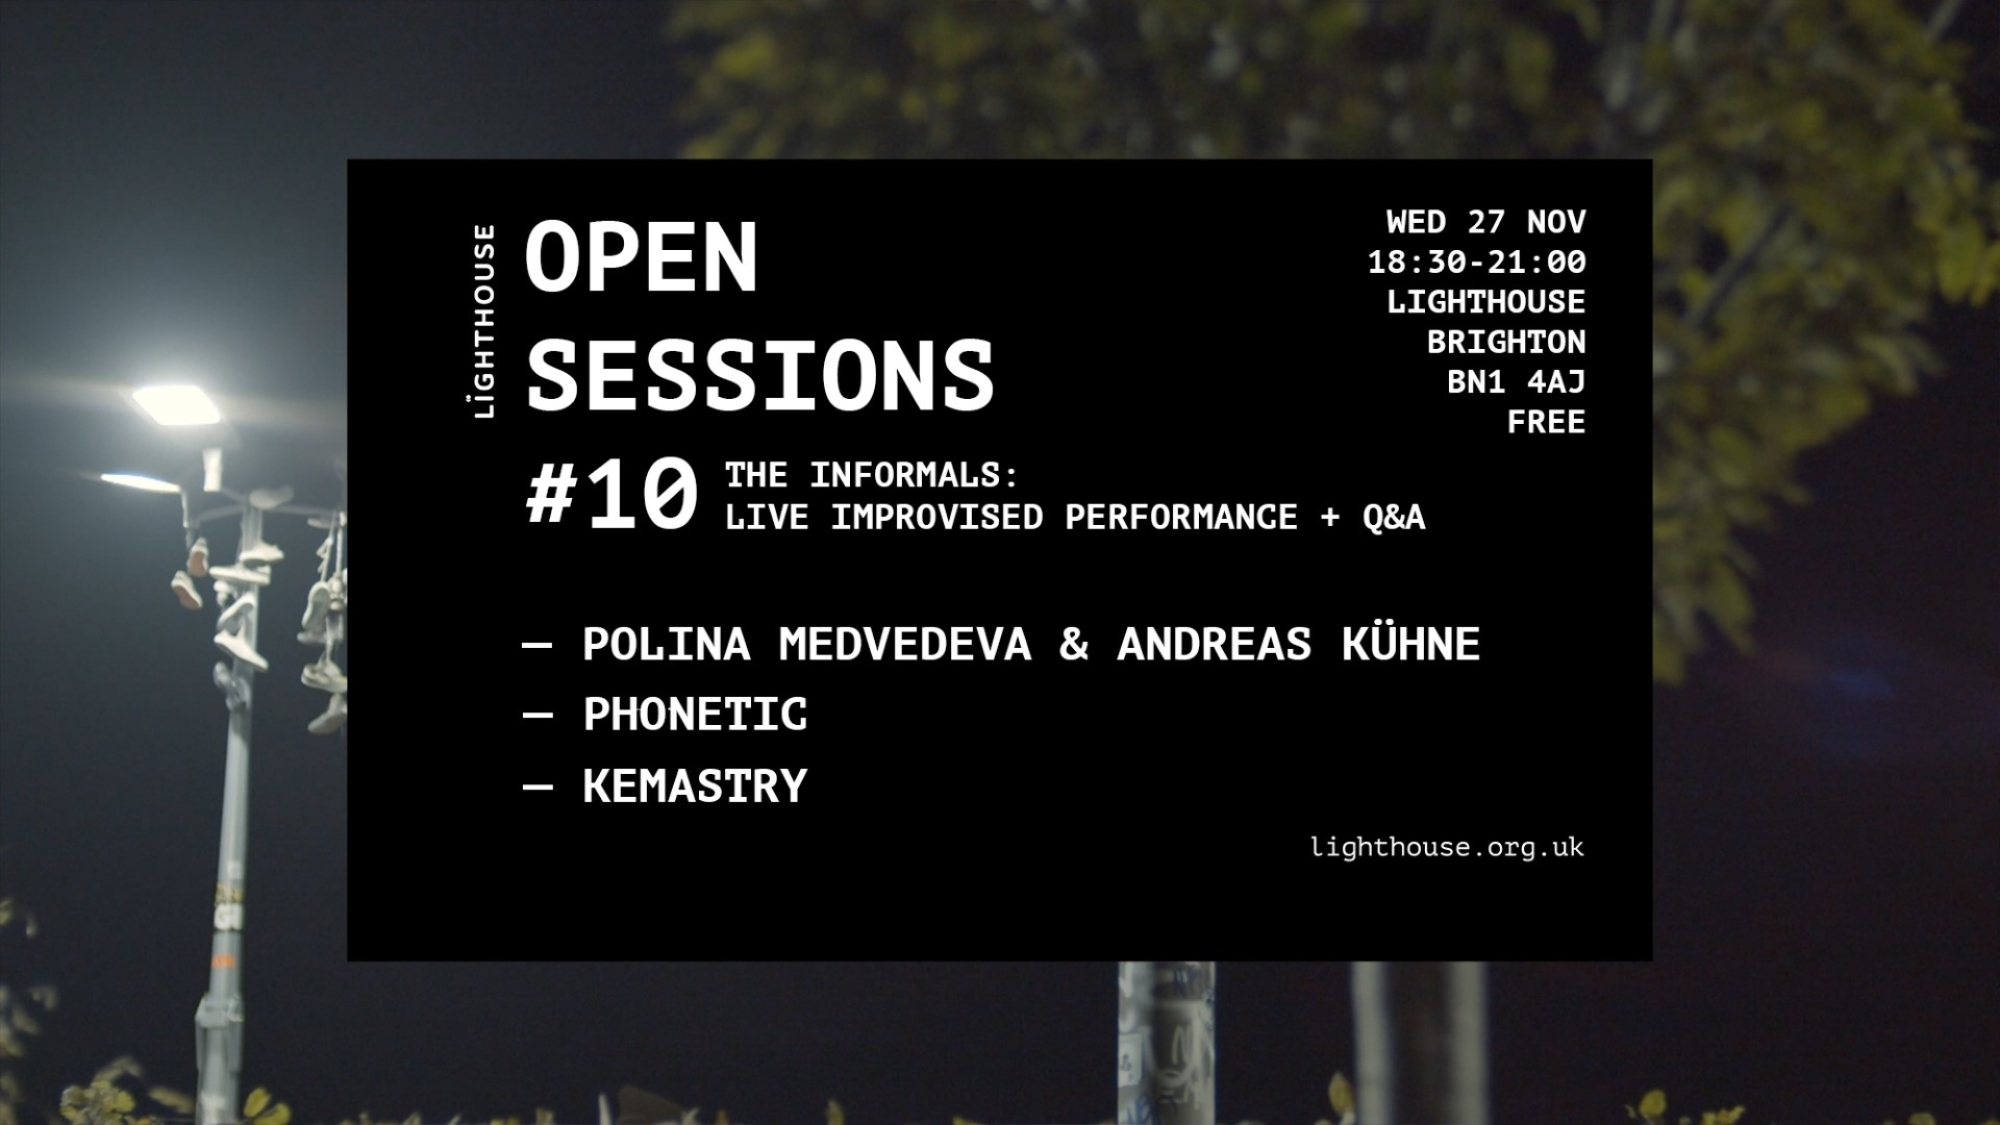 Open Session #10: The Informals